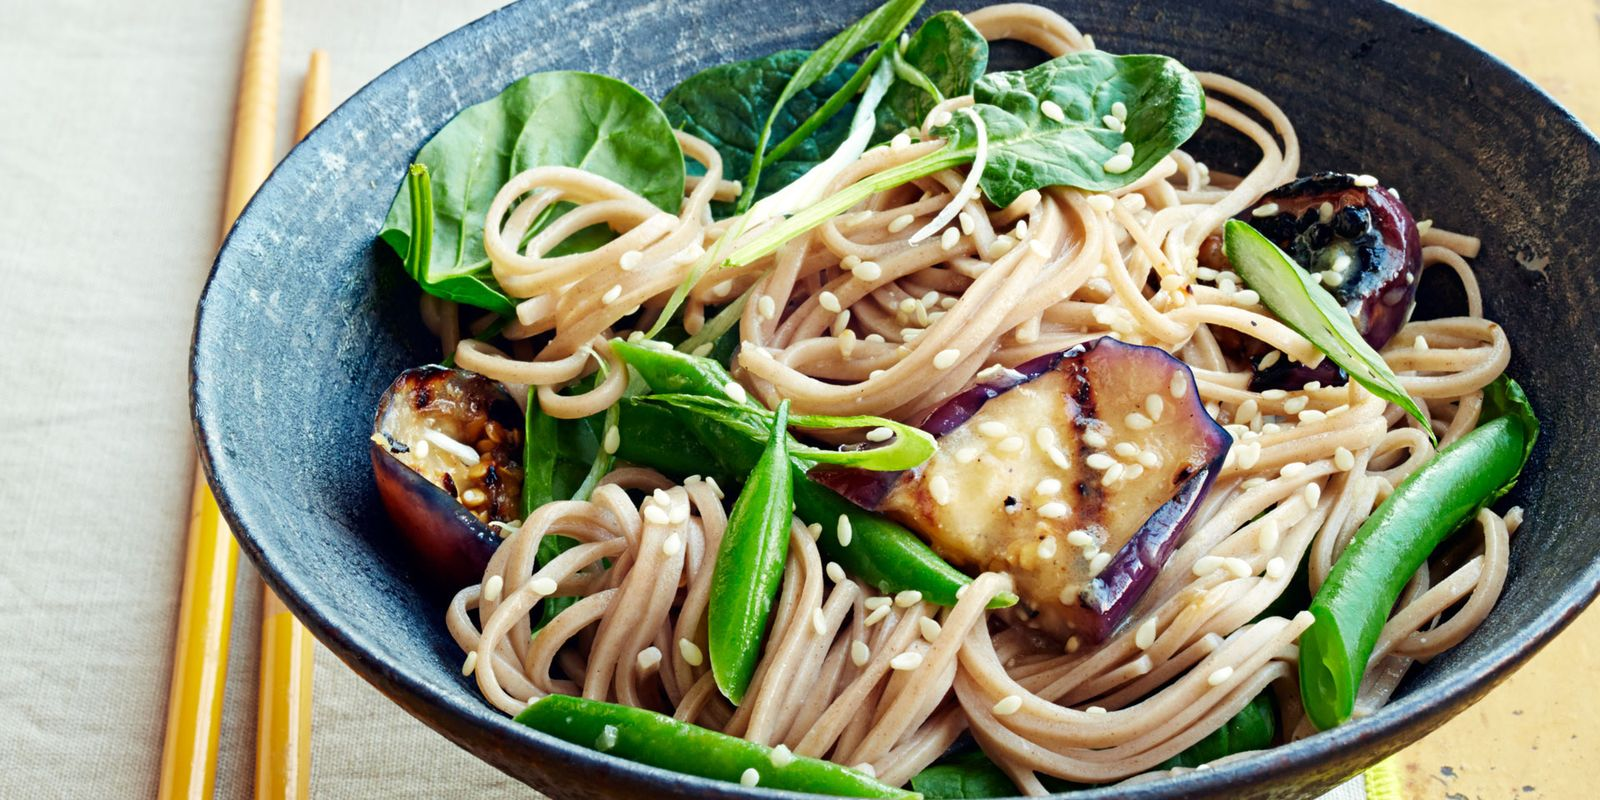 12 Soba Noodle Recipes - Recipes for Buckwheat Noodles